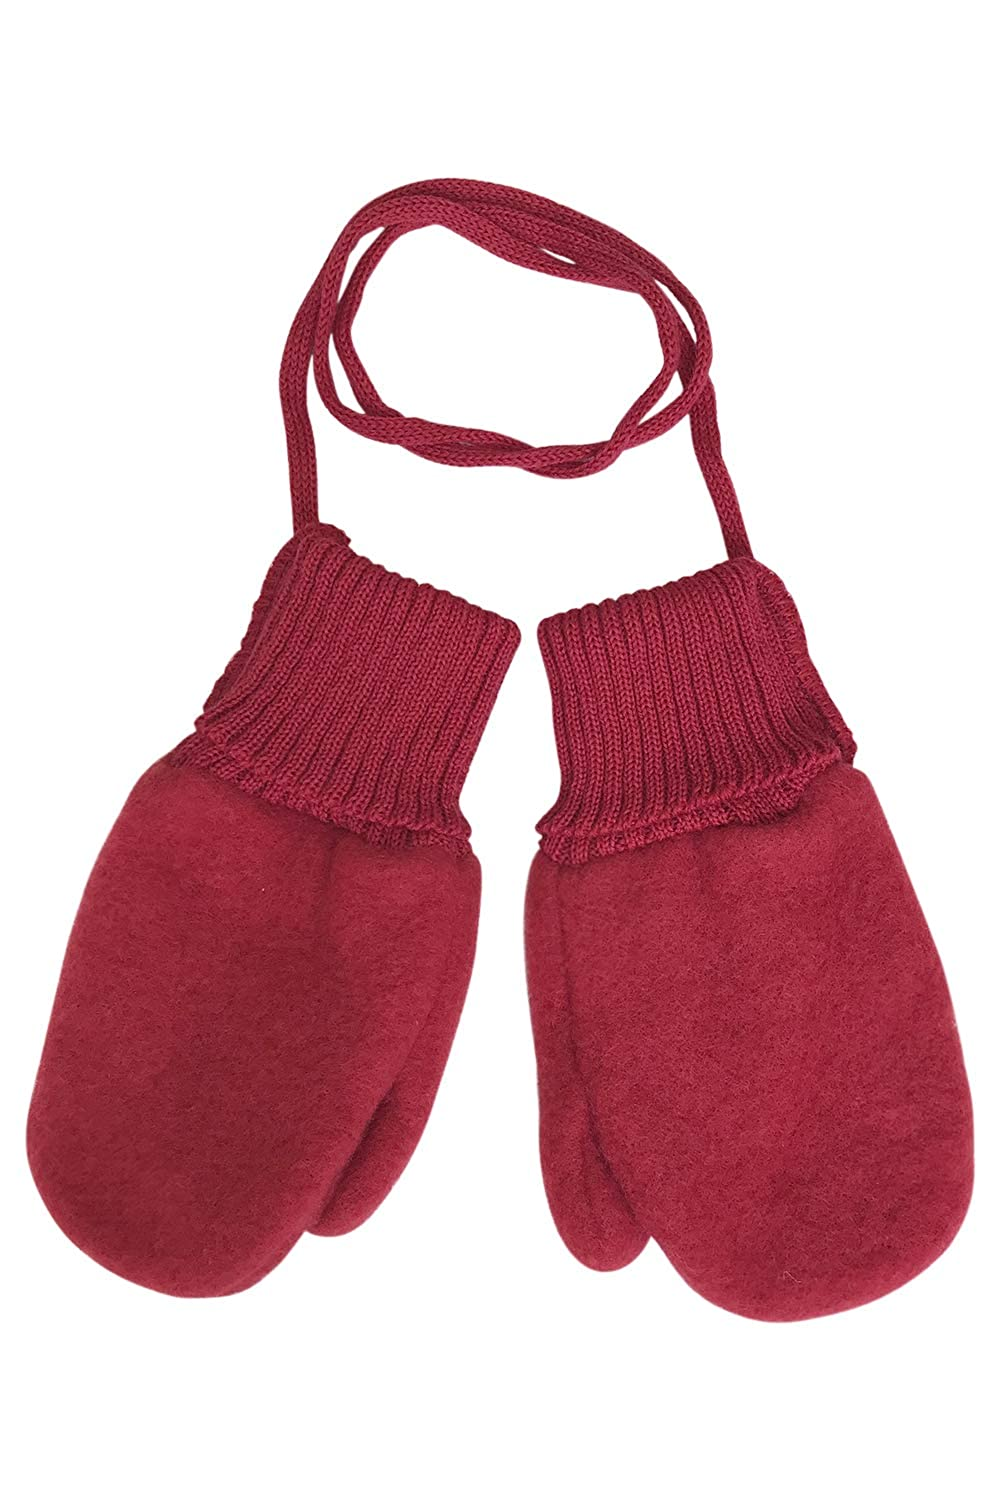 Toddler and Kids Mittens: Organic Merino Wool Snow Gloves with String Reiff 201110-KIDS-WOOL-MITTENS